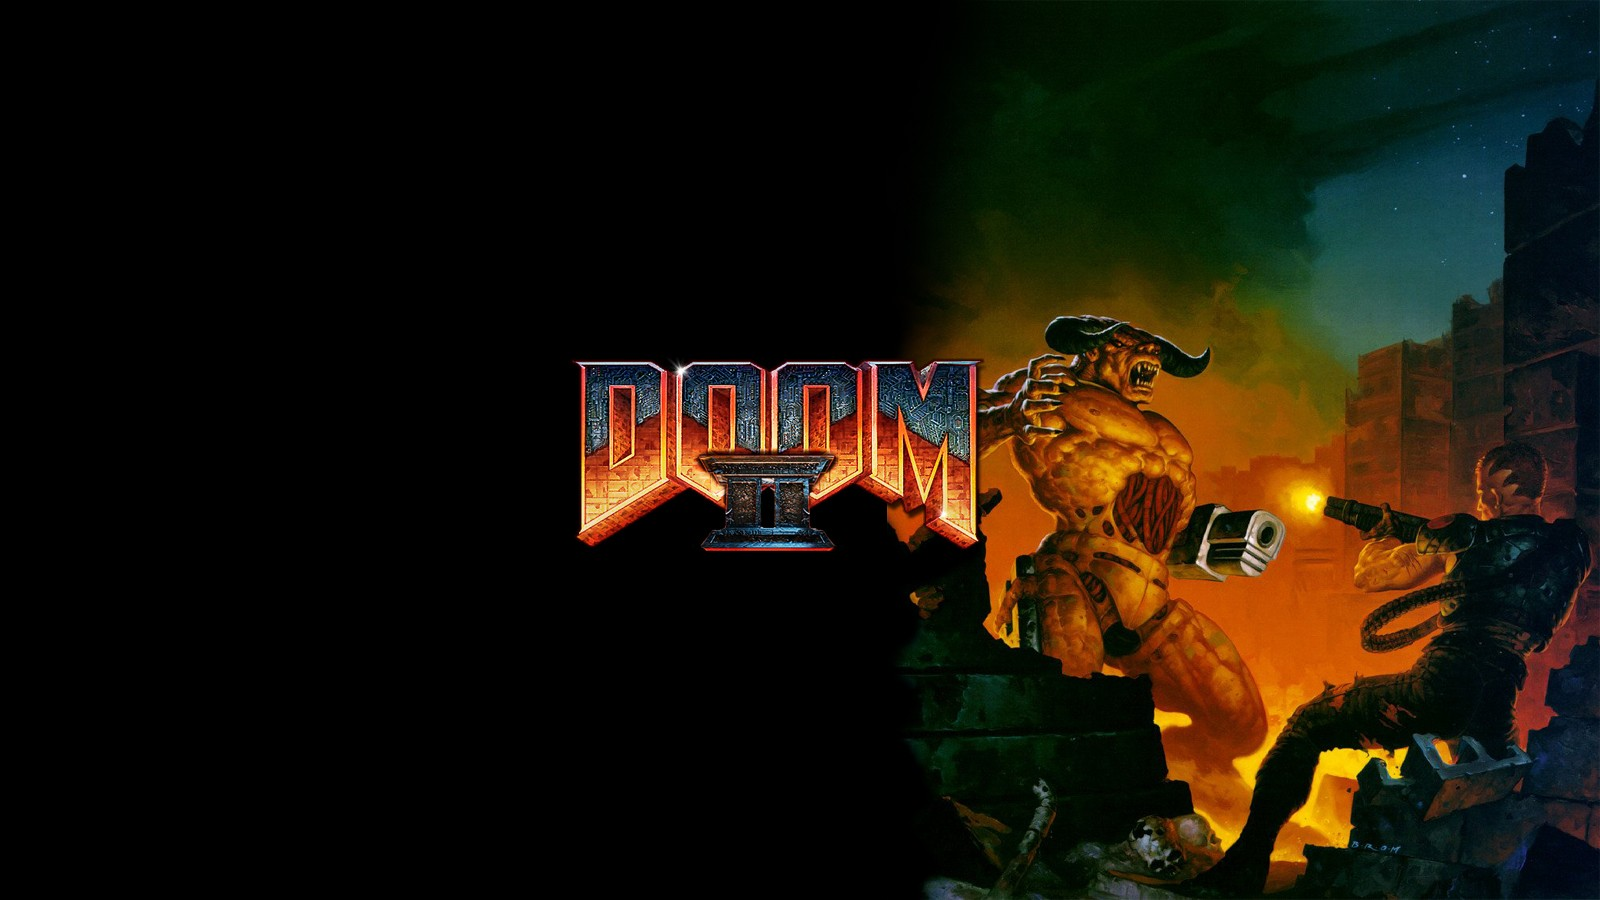 doom retro games games fresh hd wallpaper Round One Games 1600x900